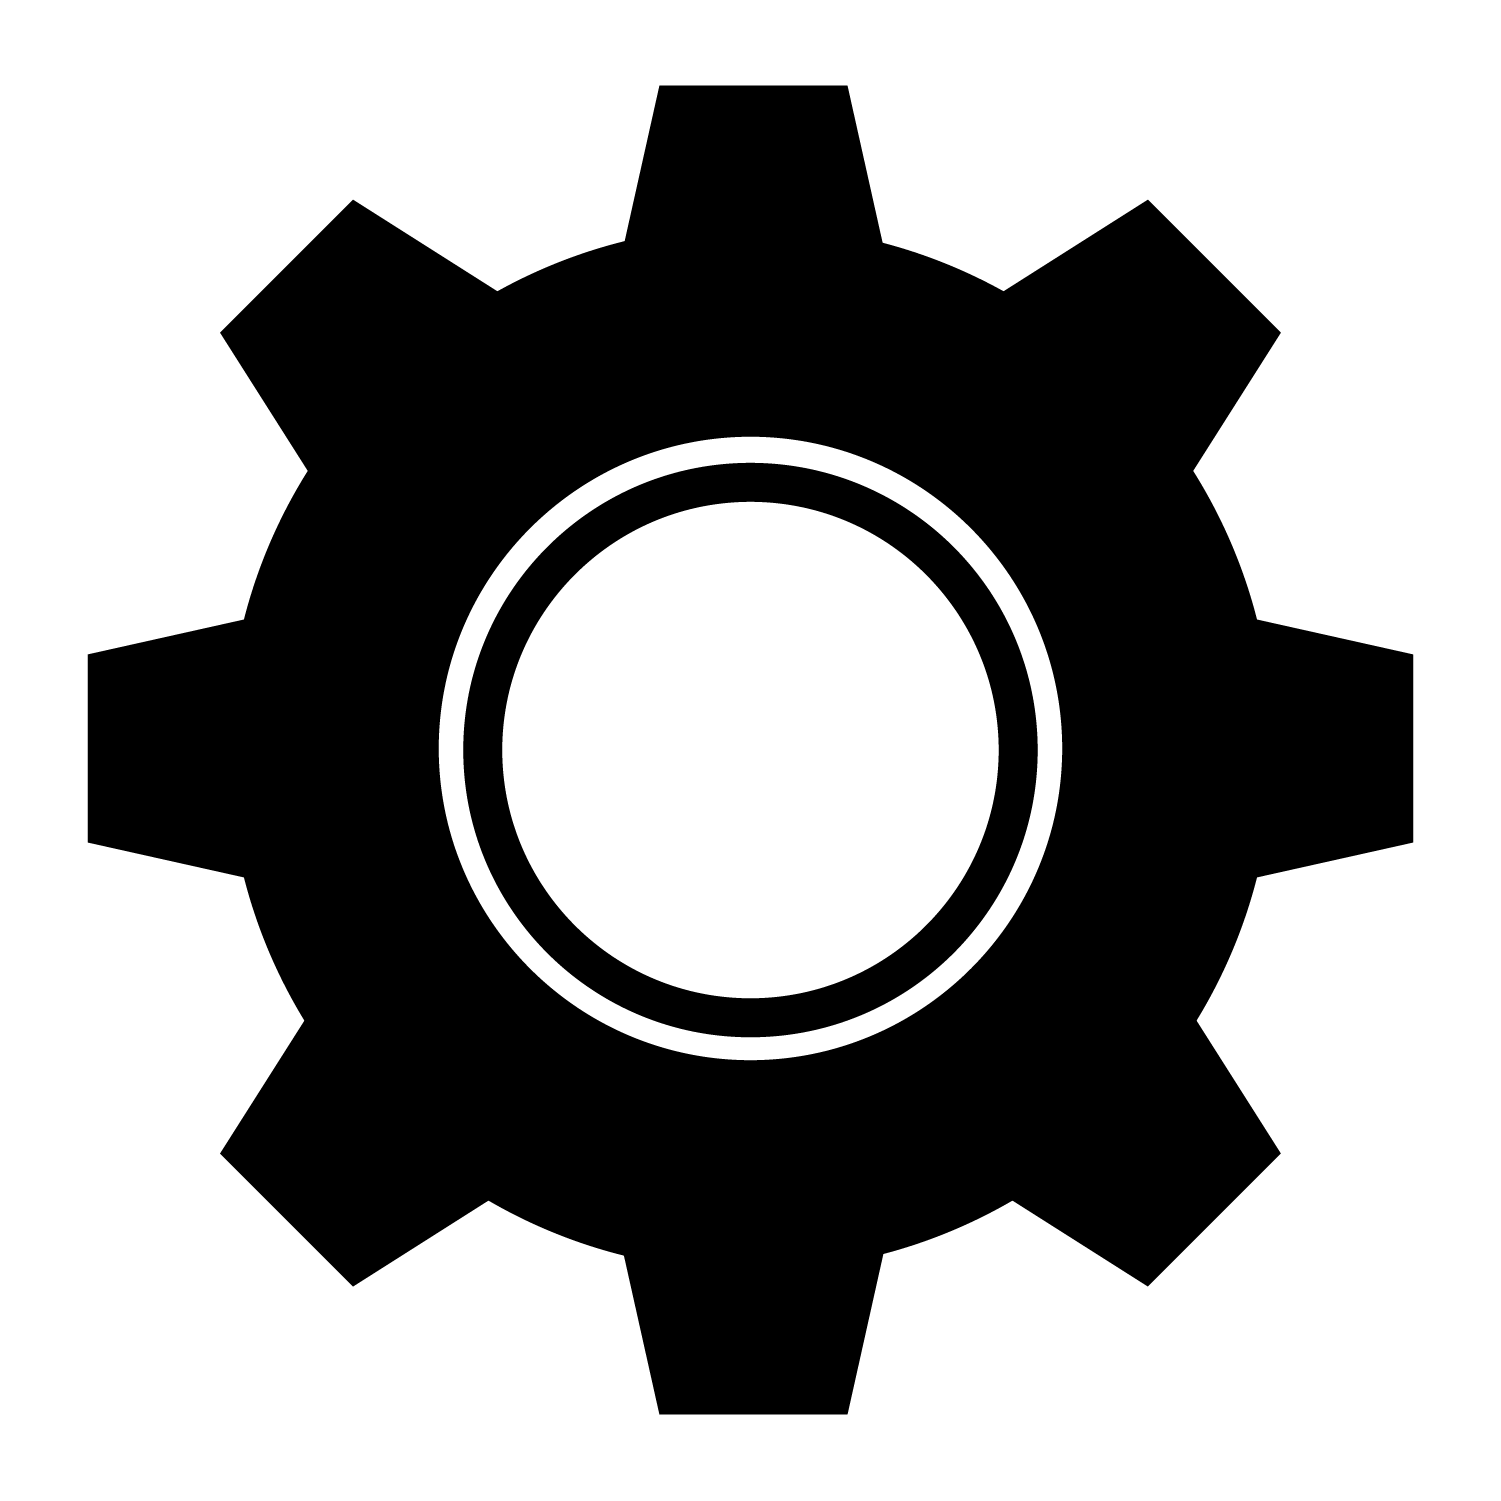 16 - Gear.png